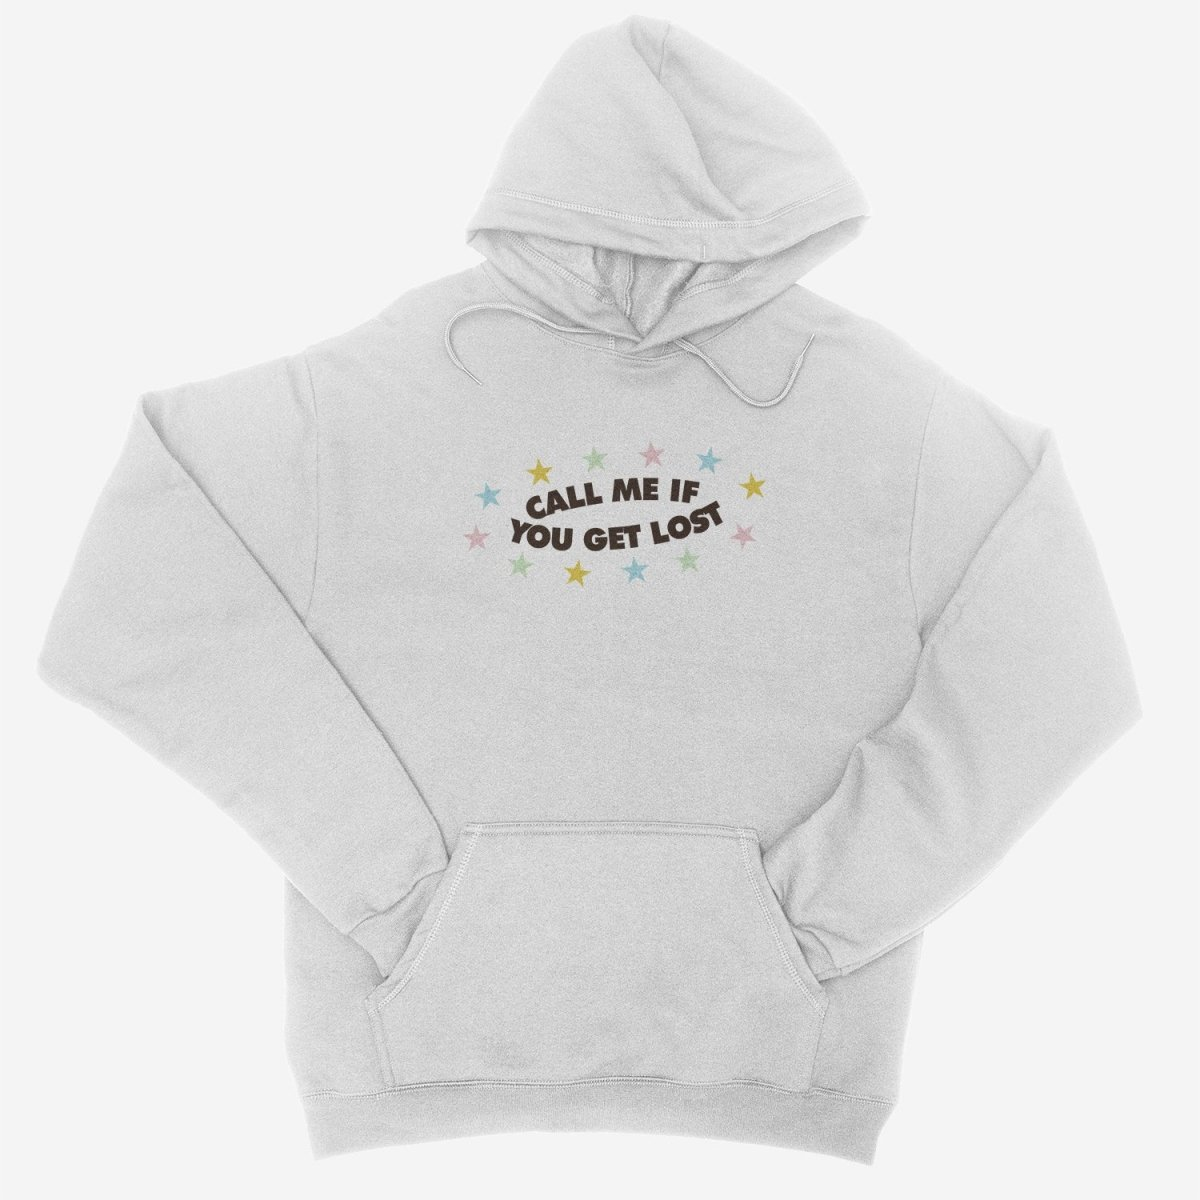 Tyler, The Creator - Call Me If You Get Lost Logo Unisex Hoodie